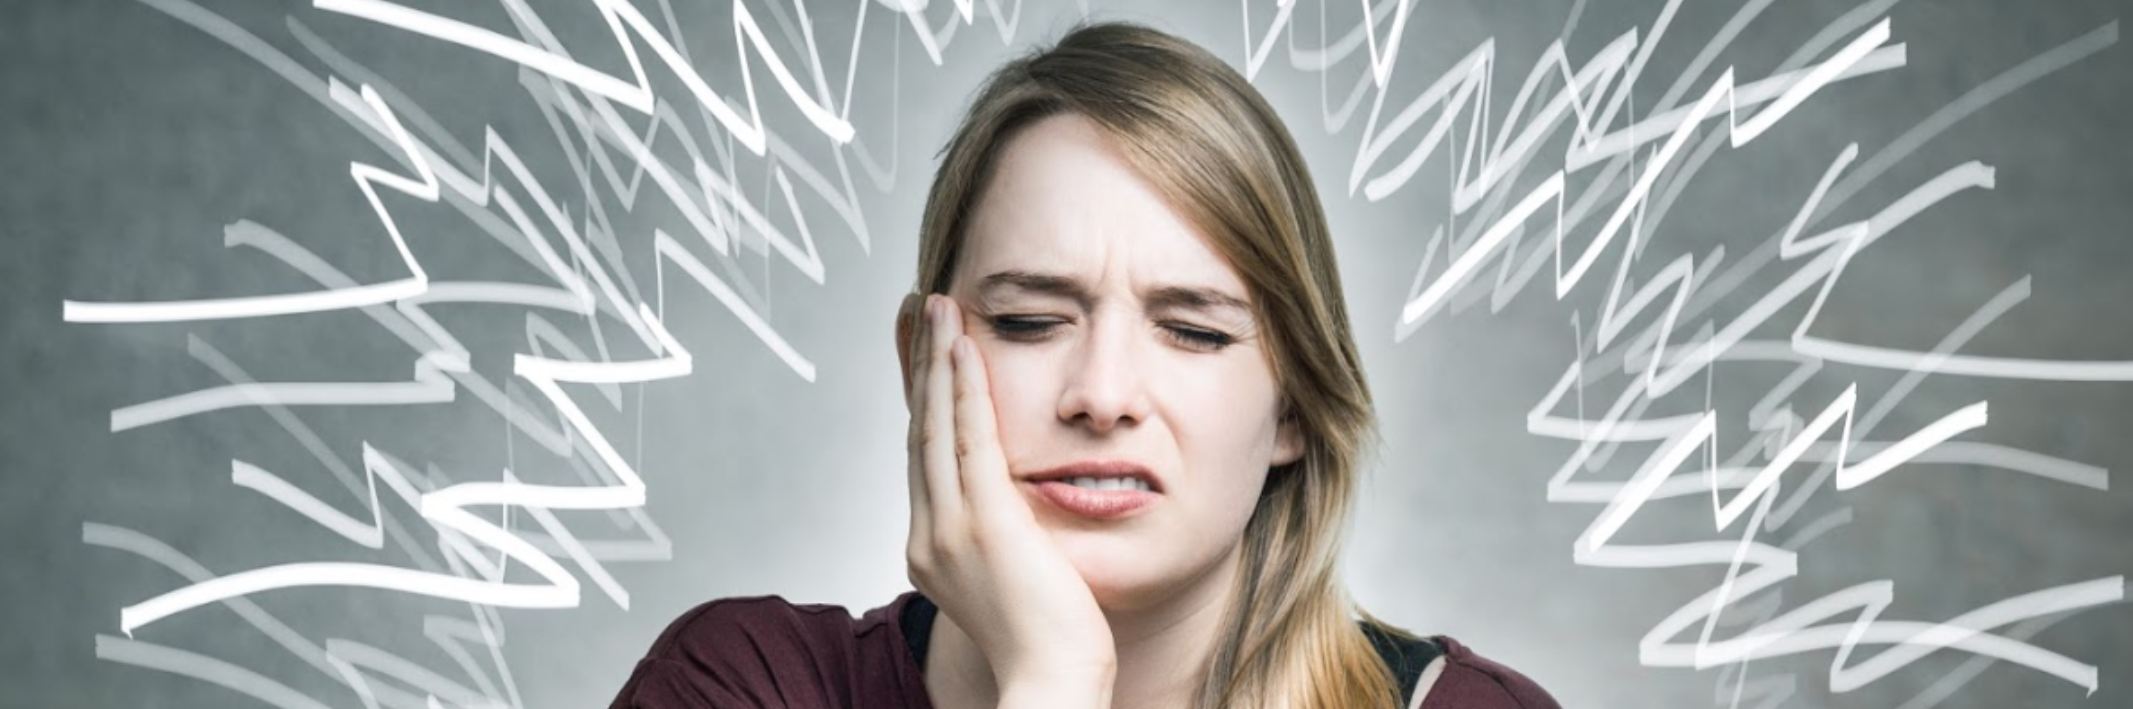 When Does A Toothache Indicate Something Serious?